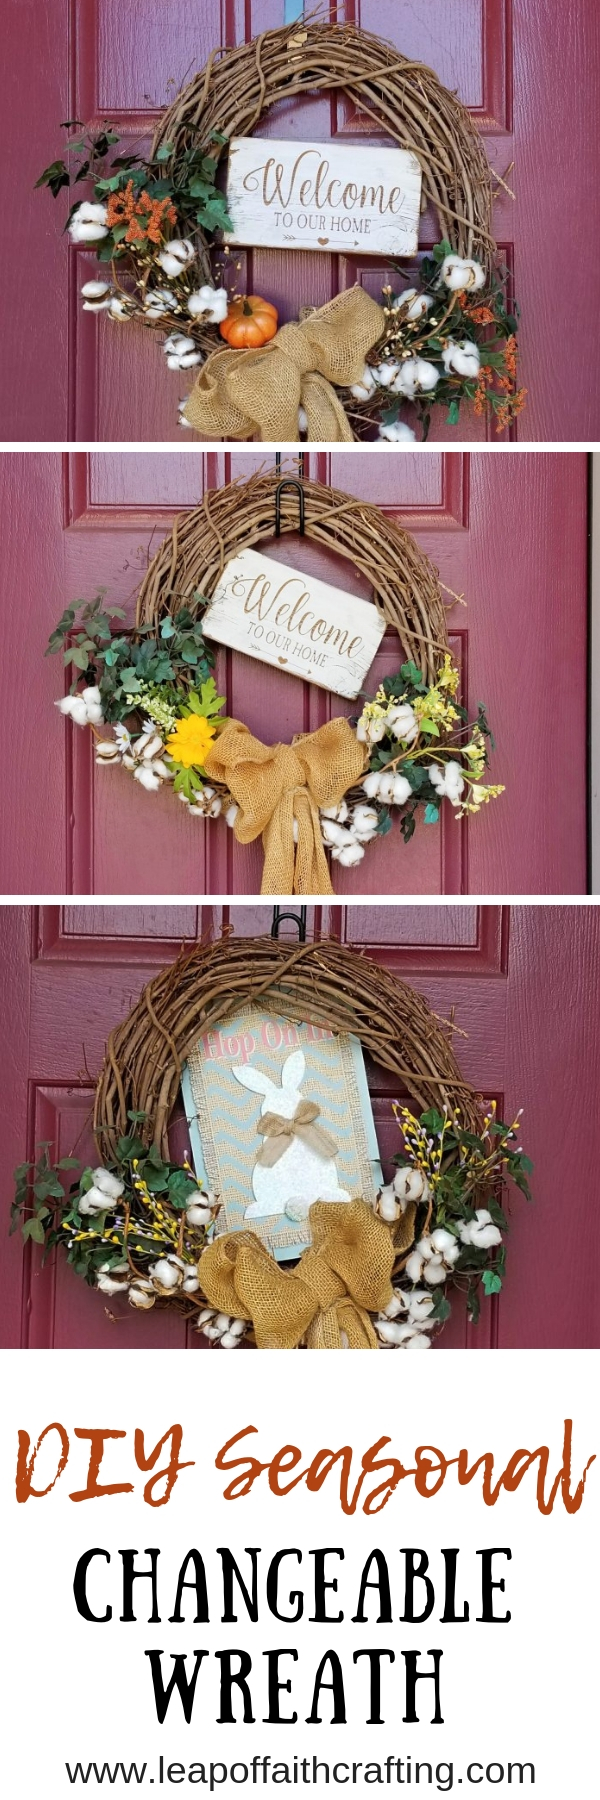 seasonal interchangeable wreaths